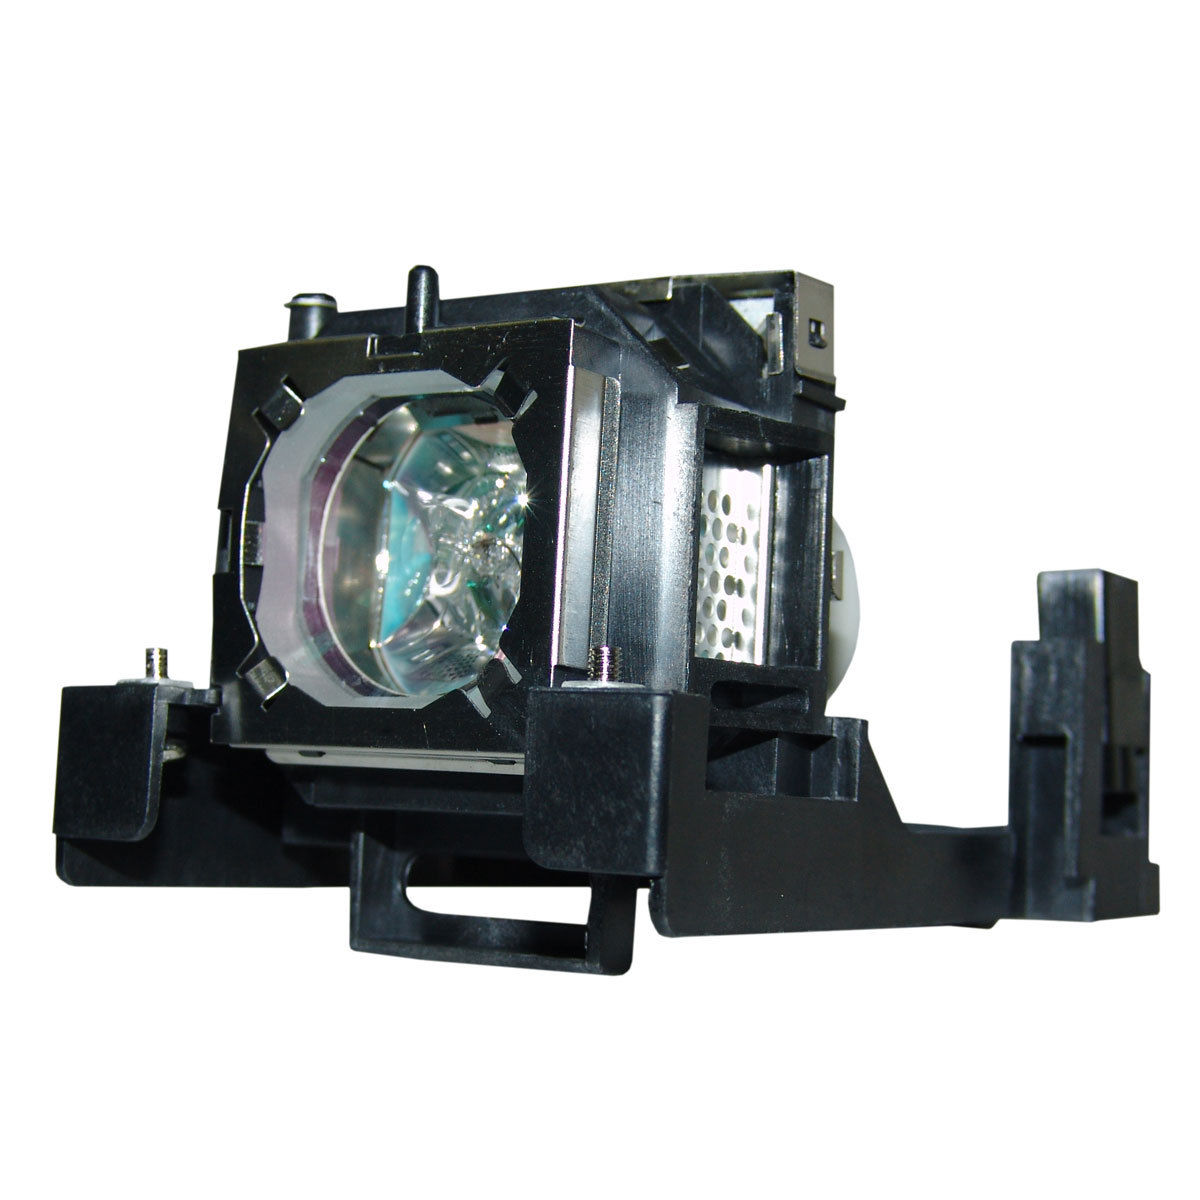 ET-LAT100 LAT100 For Panasonic PT-TW230 PT-TW230EA PT-TW230REA PT-TW230U PT-TW231RE PT-TW231RU Projector Lamp Bulb With housing projector lamp bulb et lal100 lal100 for panasonic pt lw25h pt lx22 pt lx26 pt lx26h pt lx36h pt lx30h pt x260 happy bate